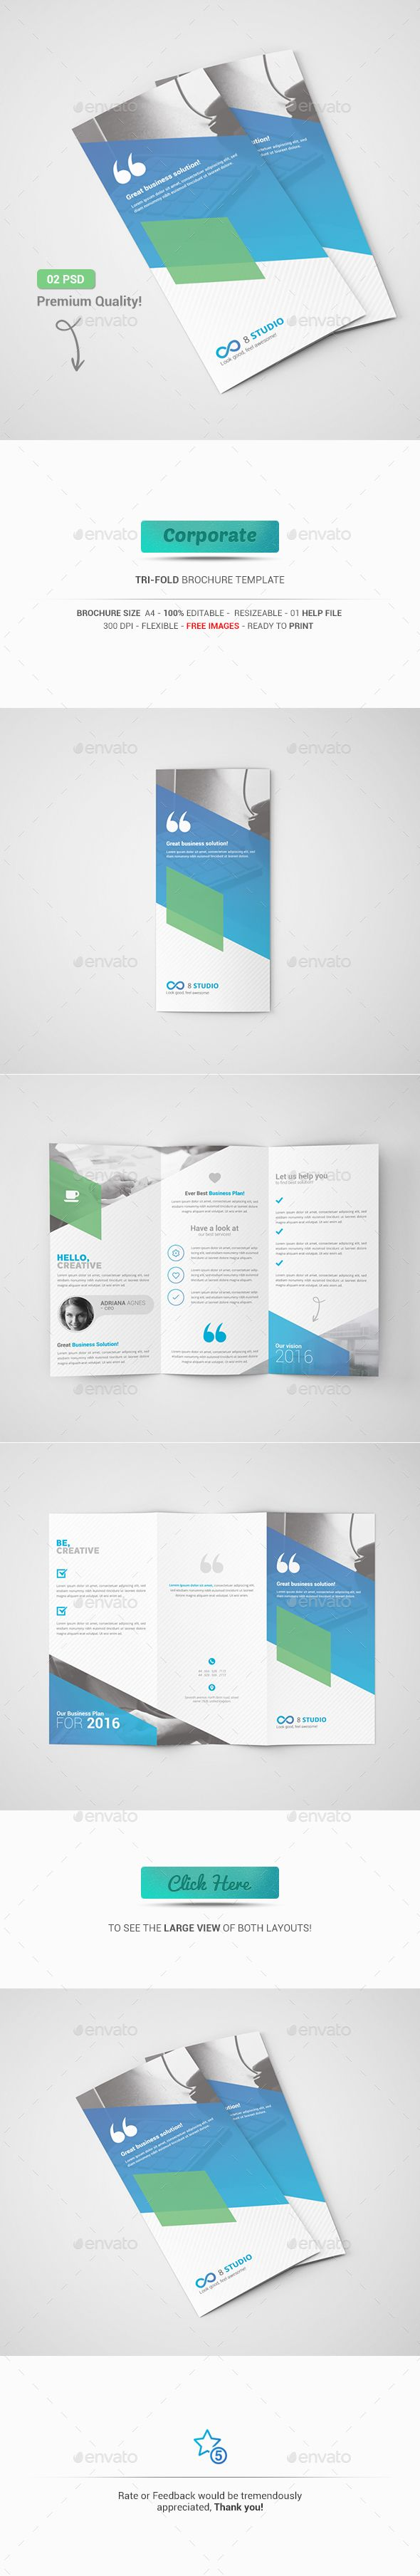 Tri-Fold Brochure Template PSD #design Download: http://graphicriver.net/item/trifold-brochure/13283007?ref=ksioks